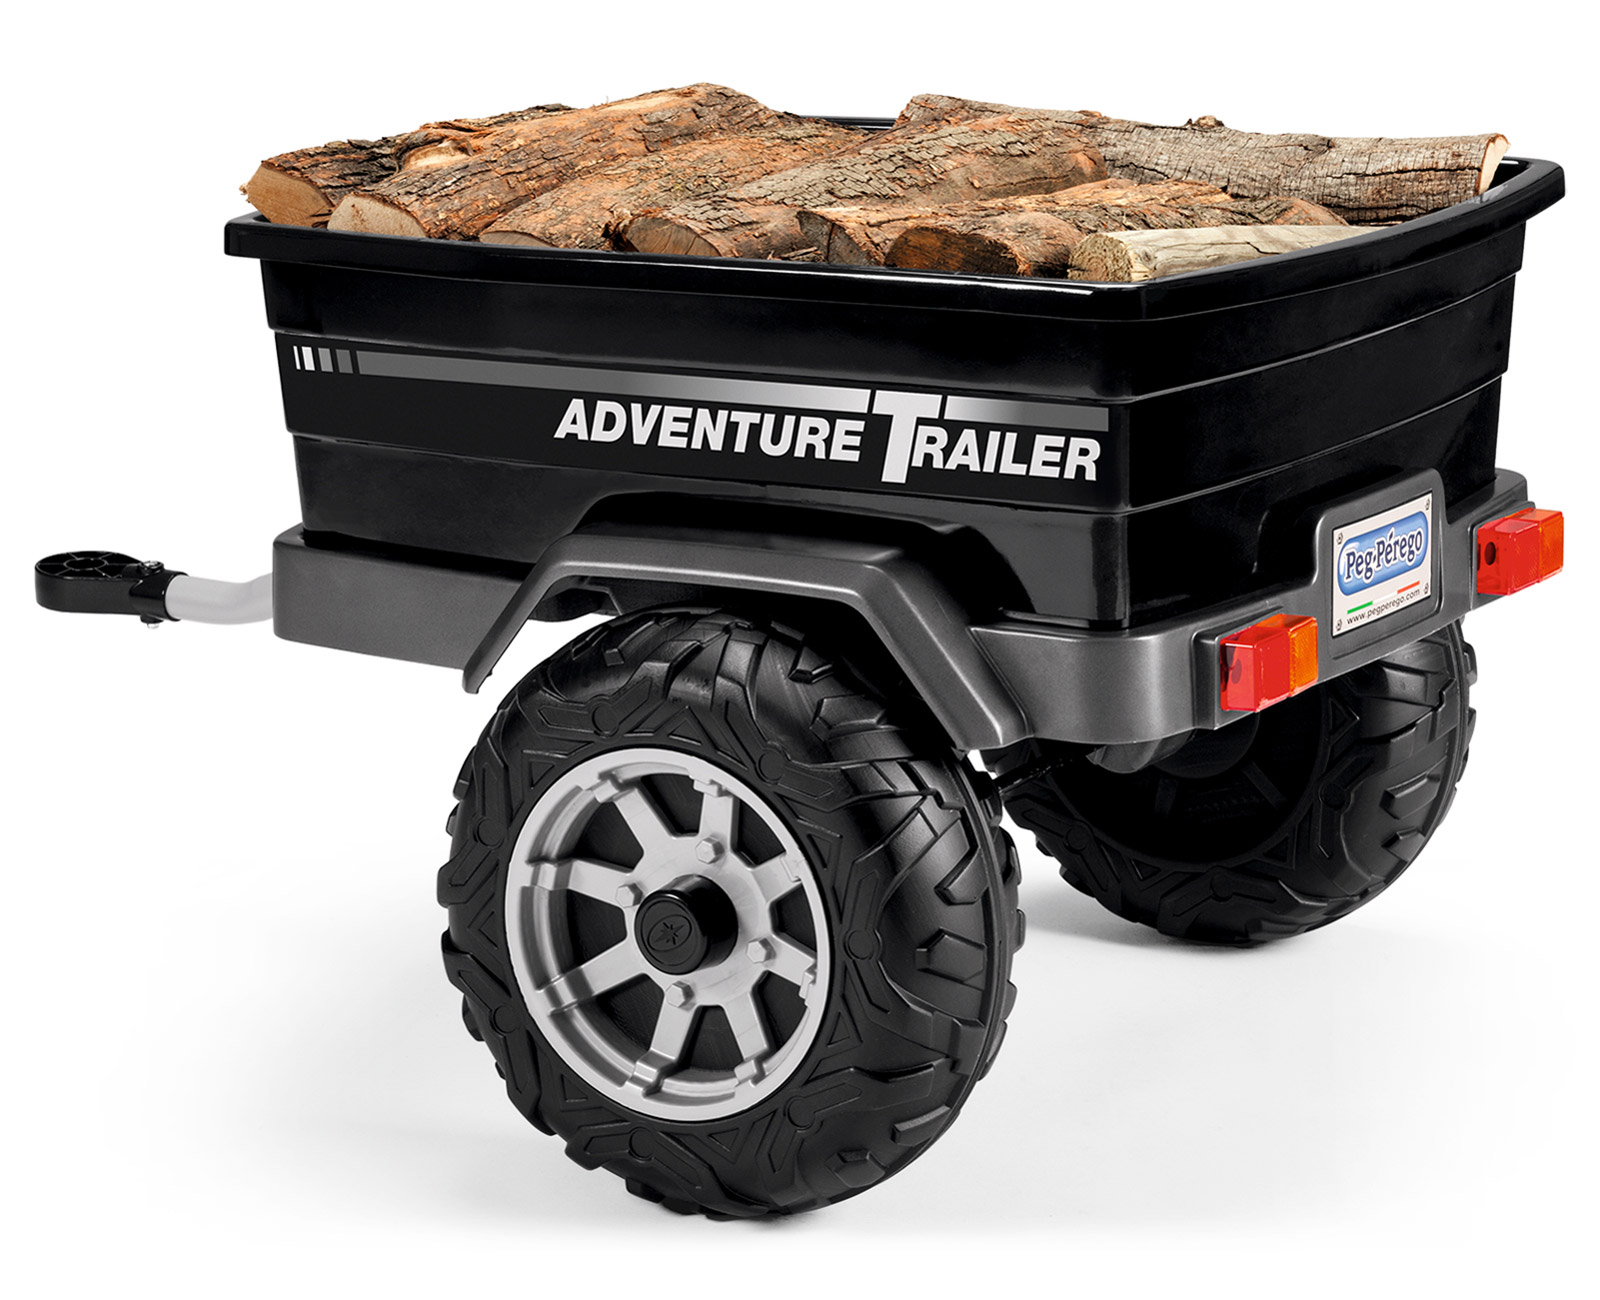 TRAILER PEG PEREGO ADVENTURE